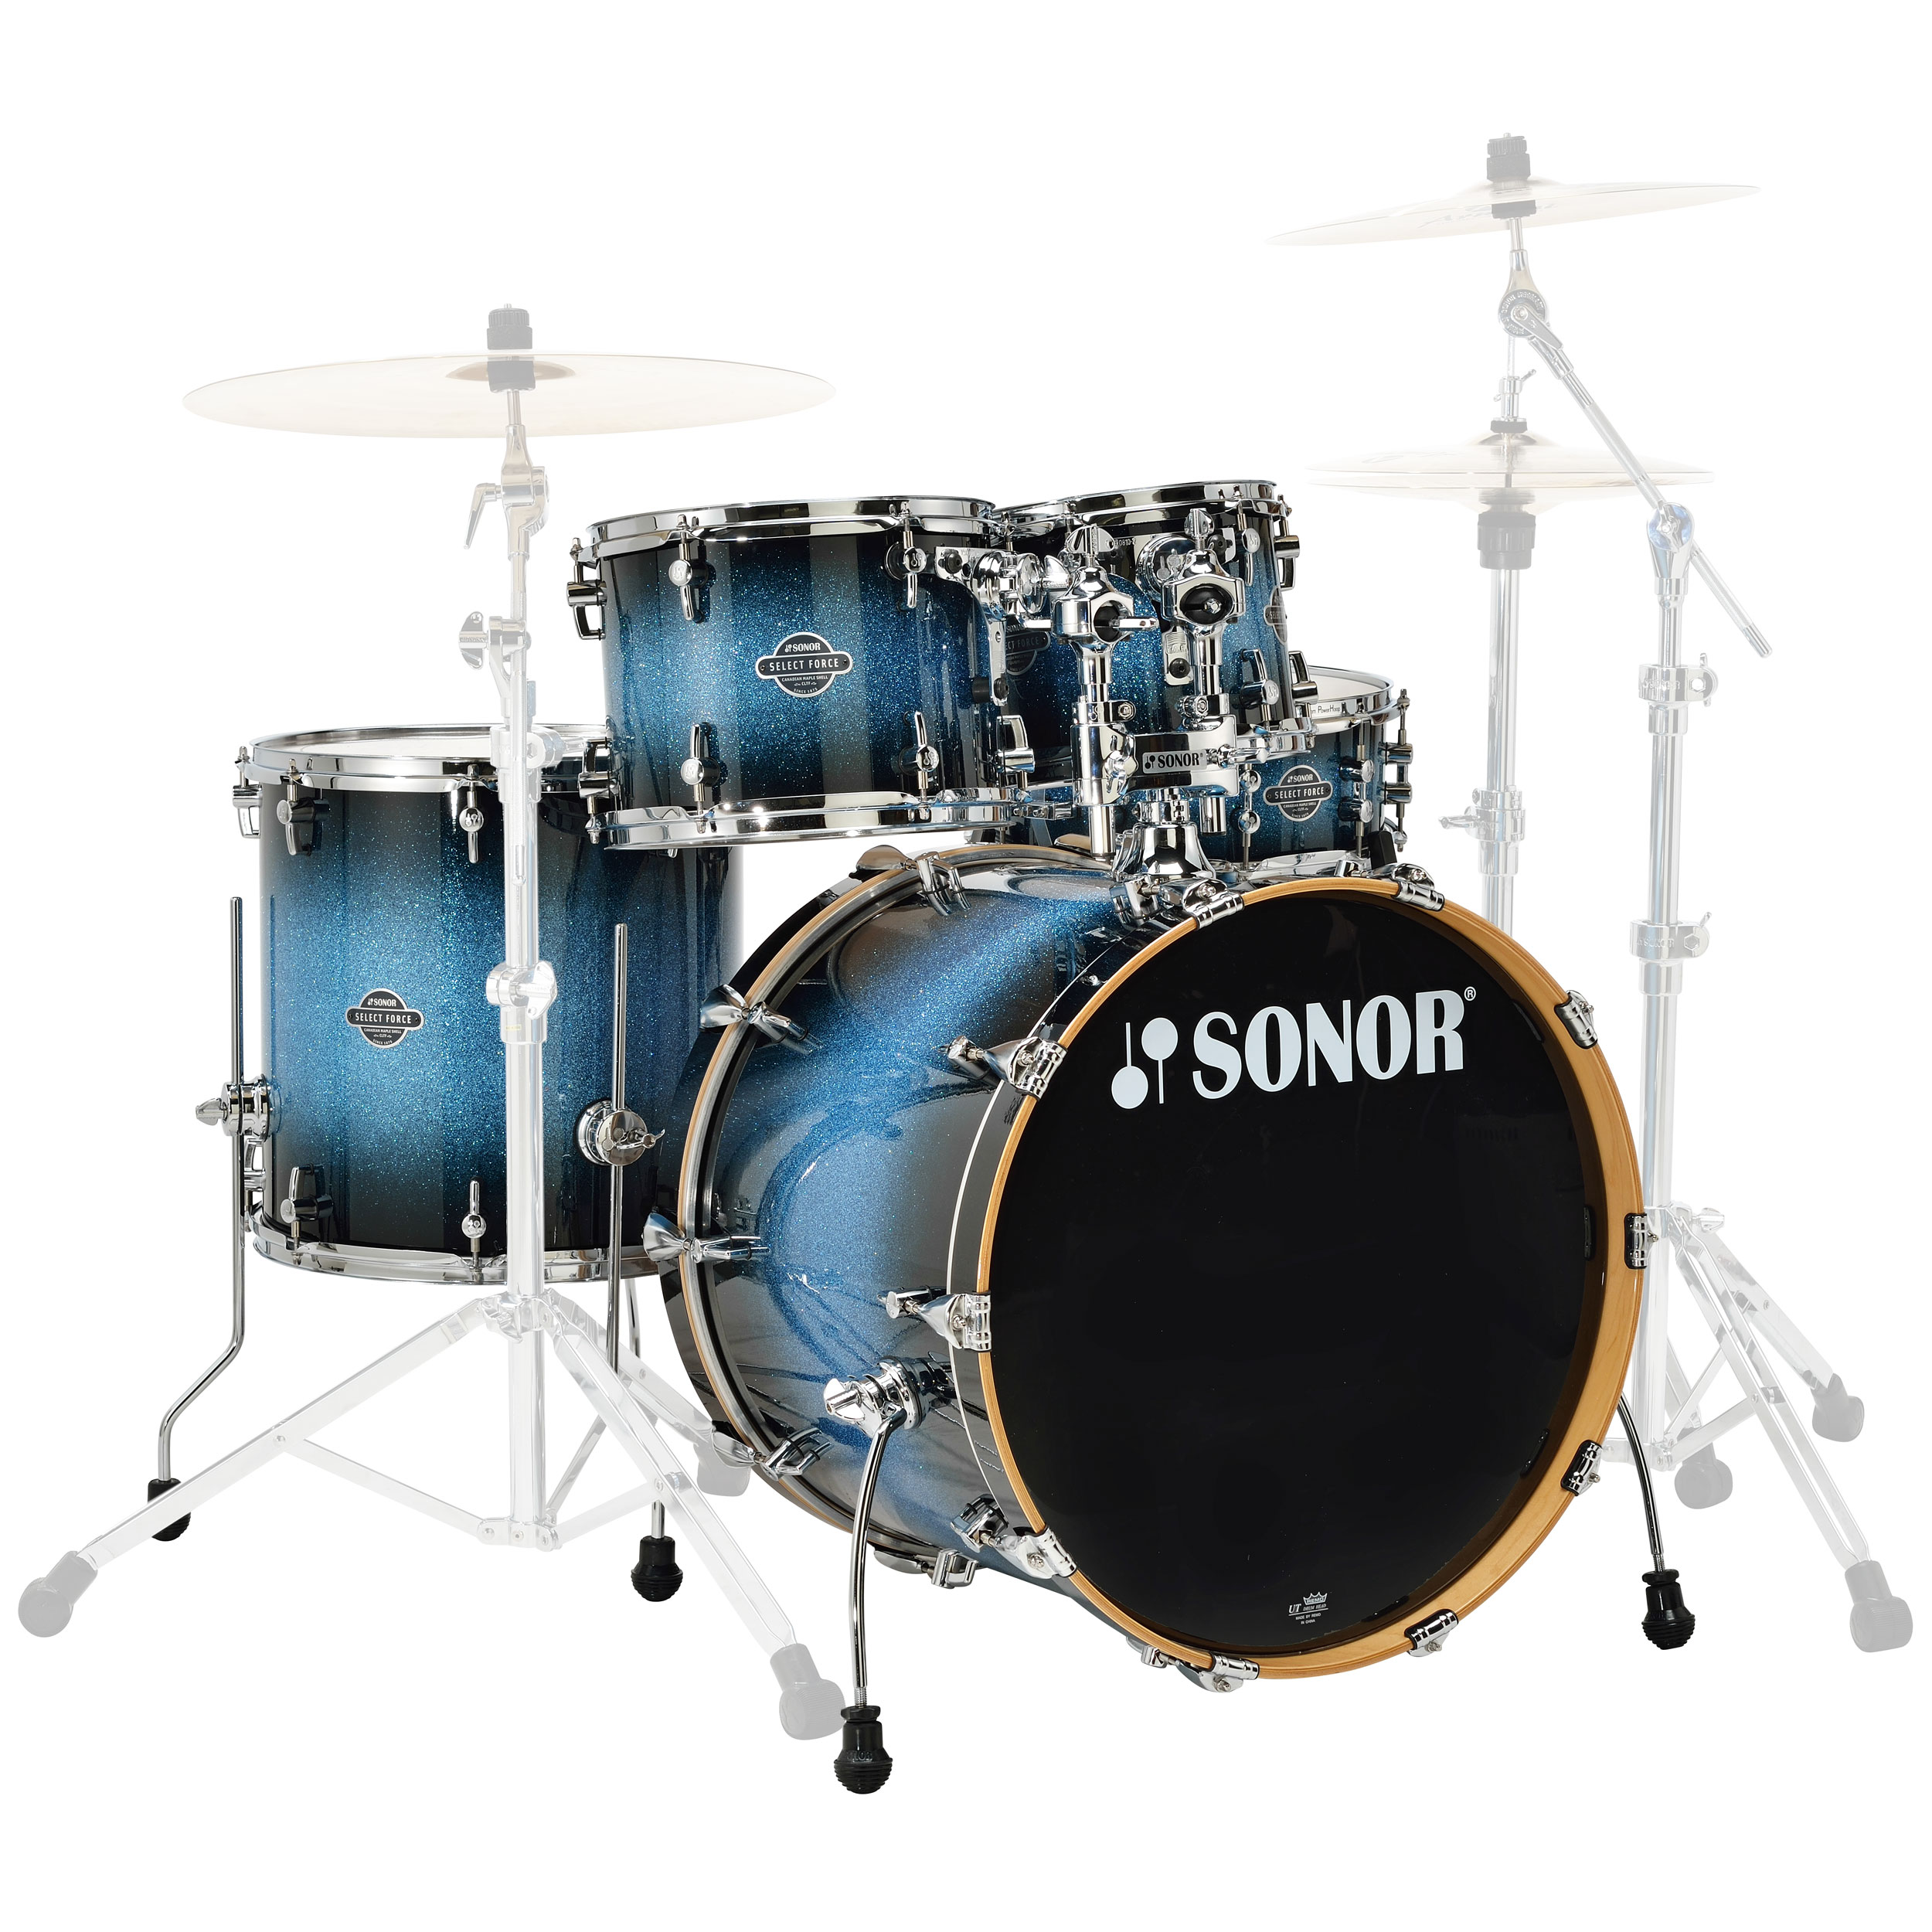 """Sonor Select Force Stage 3 5-Piece Drum Set Shell Pack (22"""" Bass, 10/12/16"""" Toms, 14"""" Snare)"""